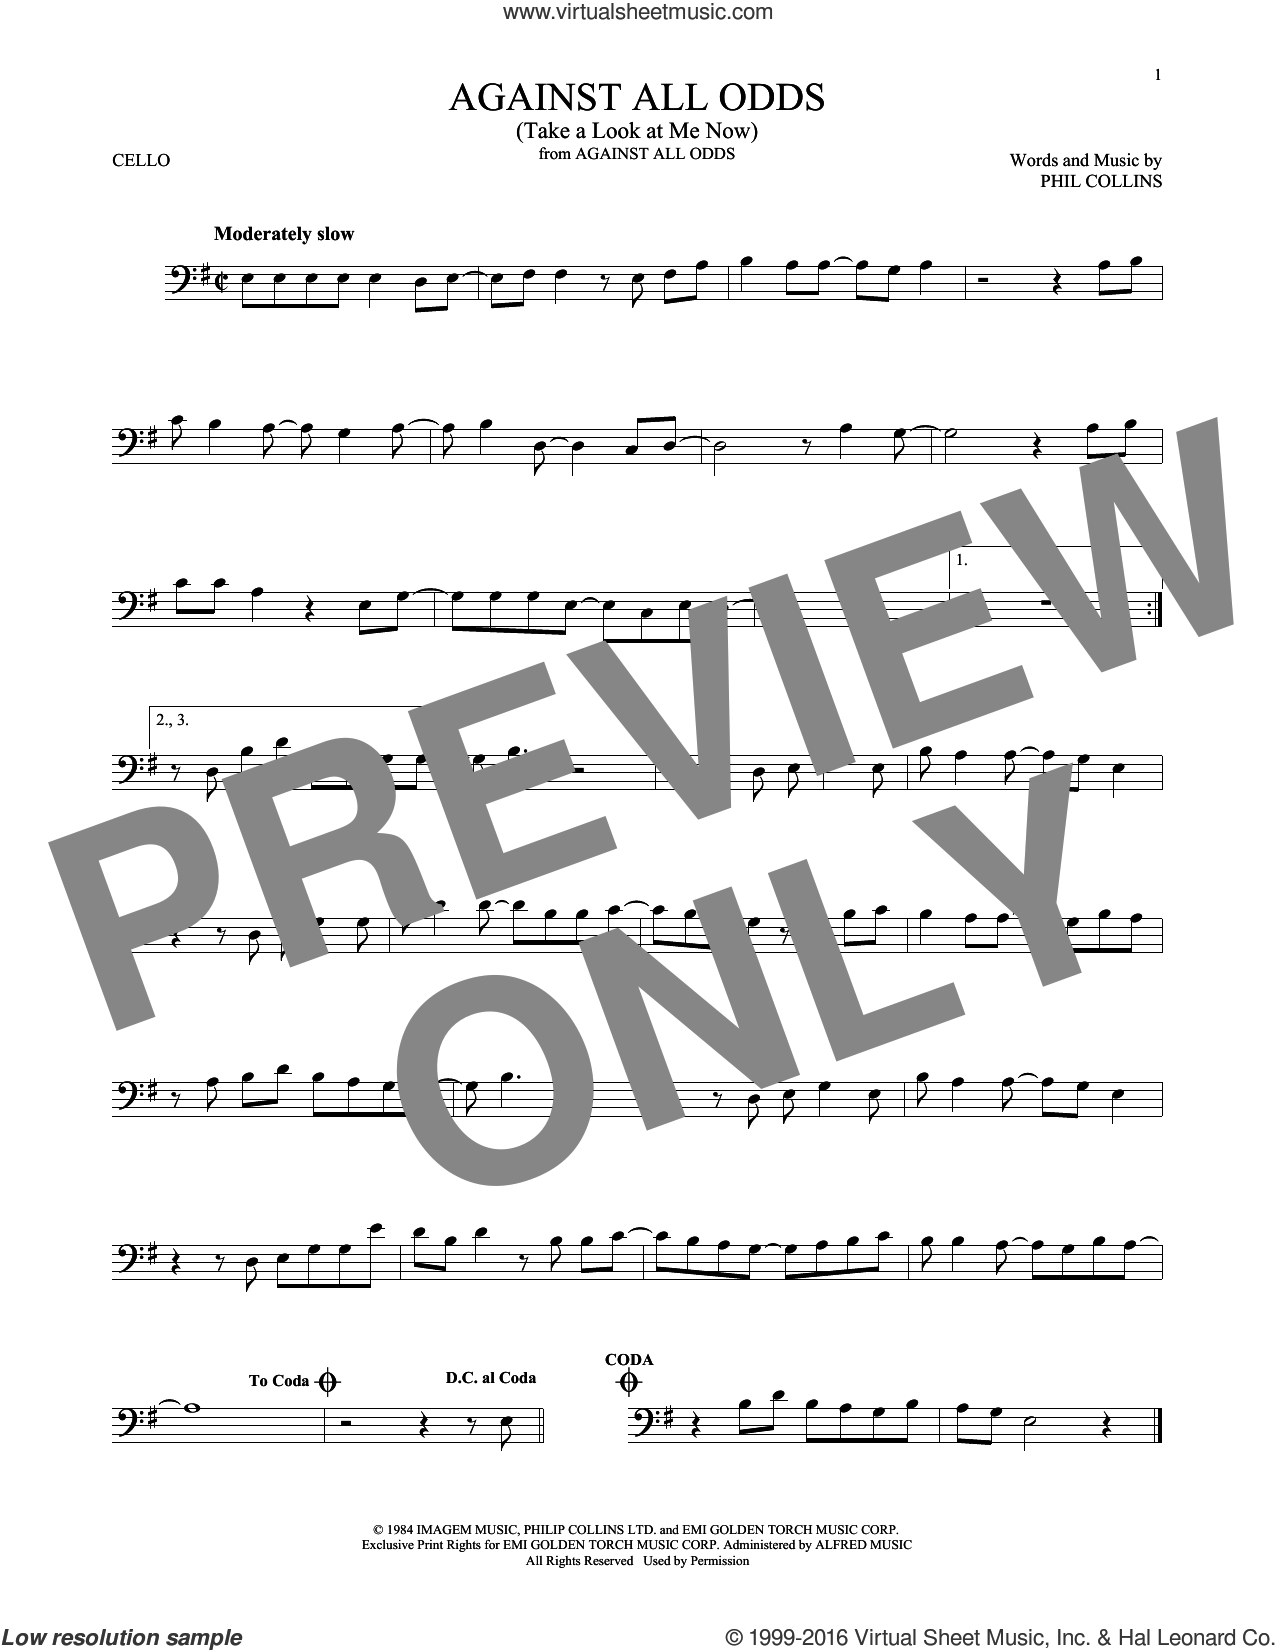 Against All Odds (Take A Look At Me Now) sheet music for cello solo by Phil Collins, intermediate